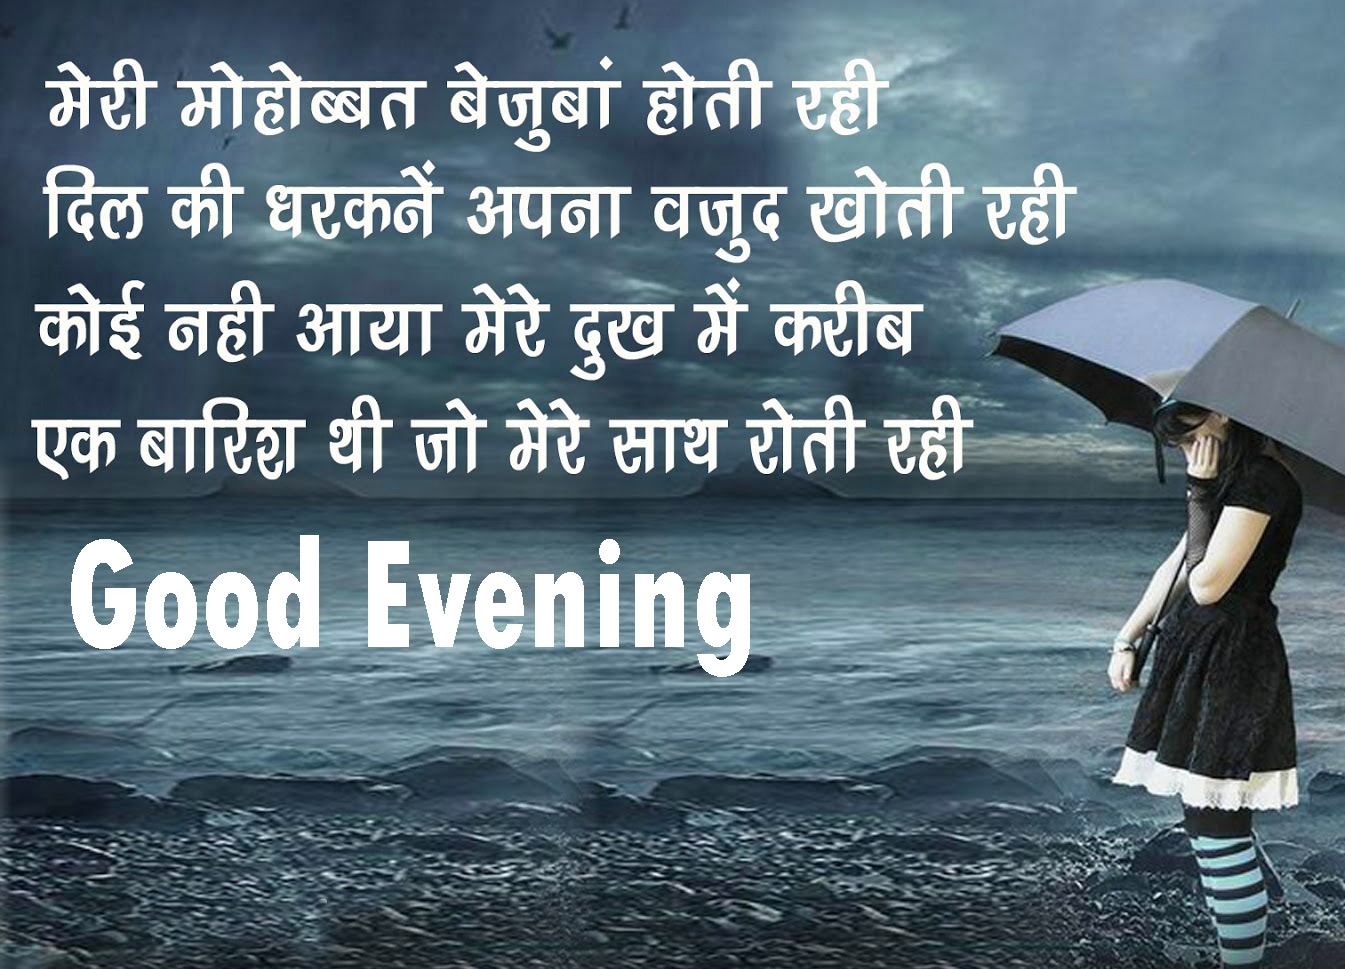 Shayari good evening images HD